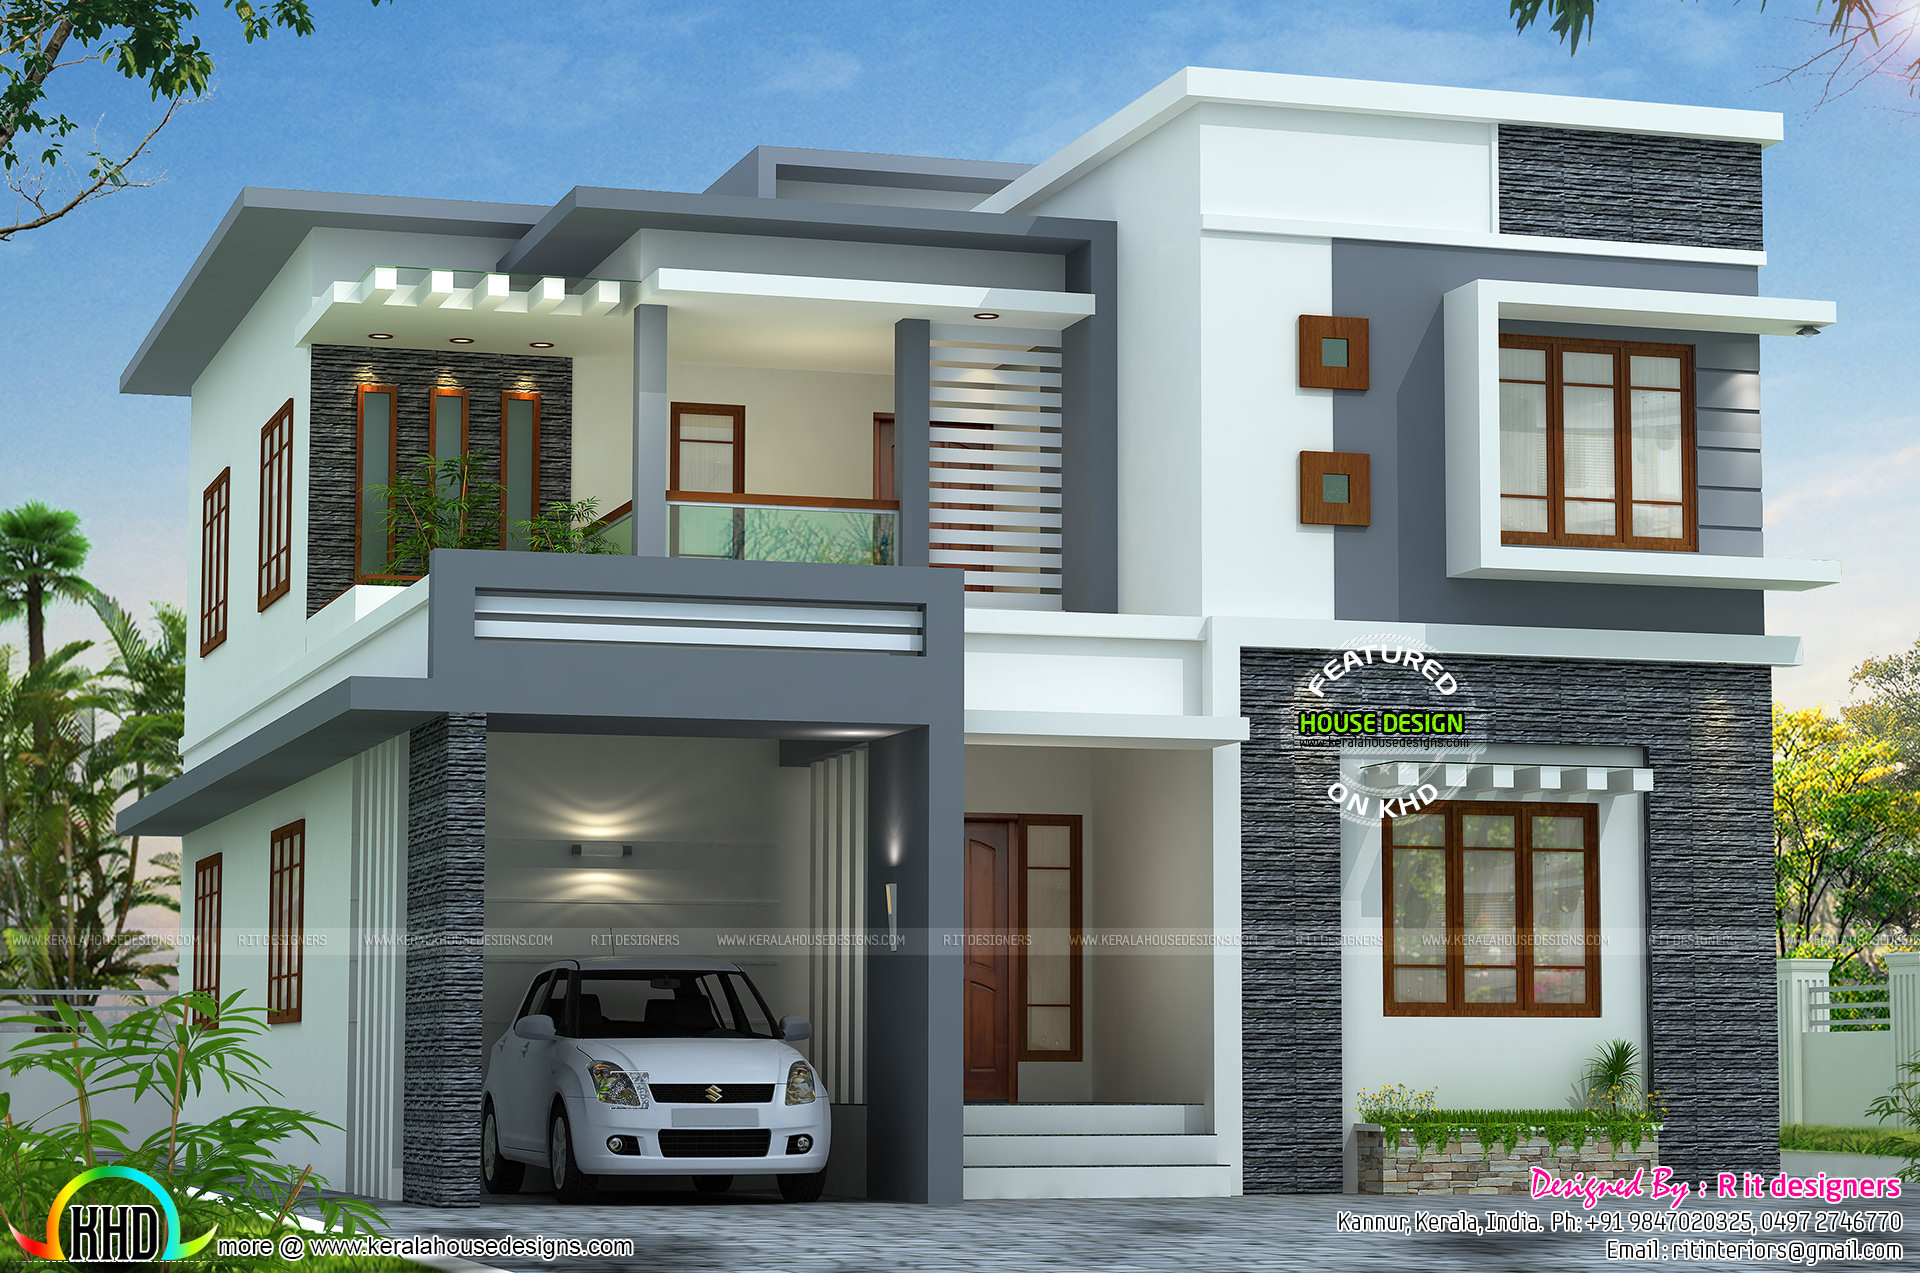 2767 Sq Ft Flat Roof Style Home Kerala Home Design And Floor Plans